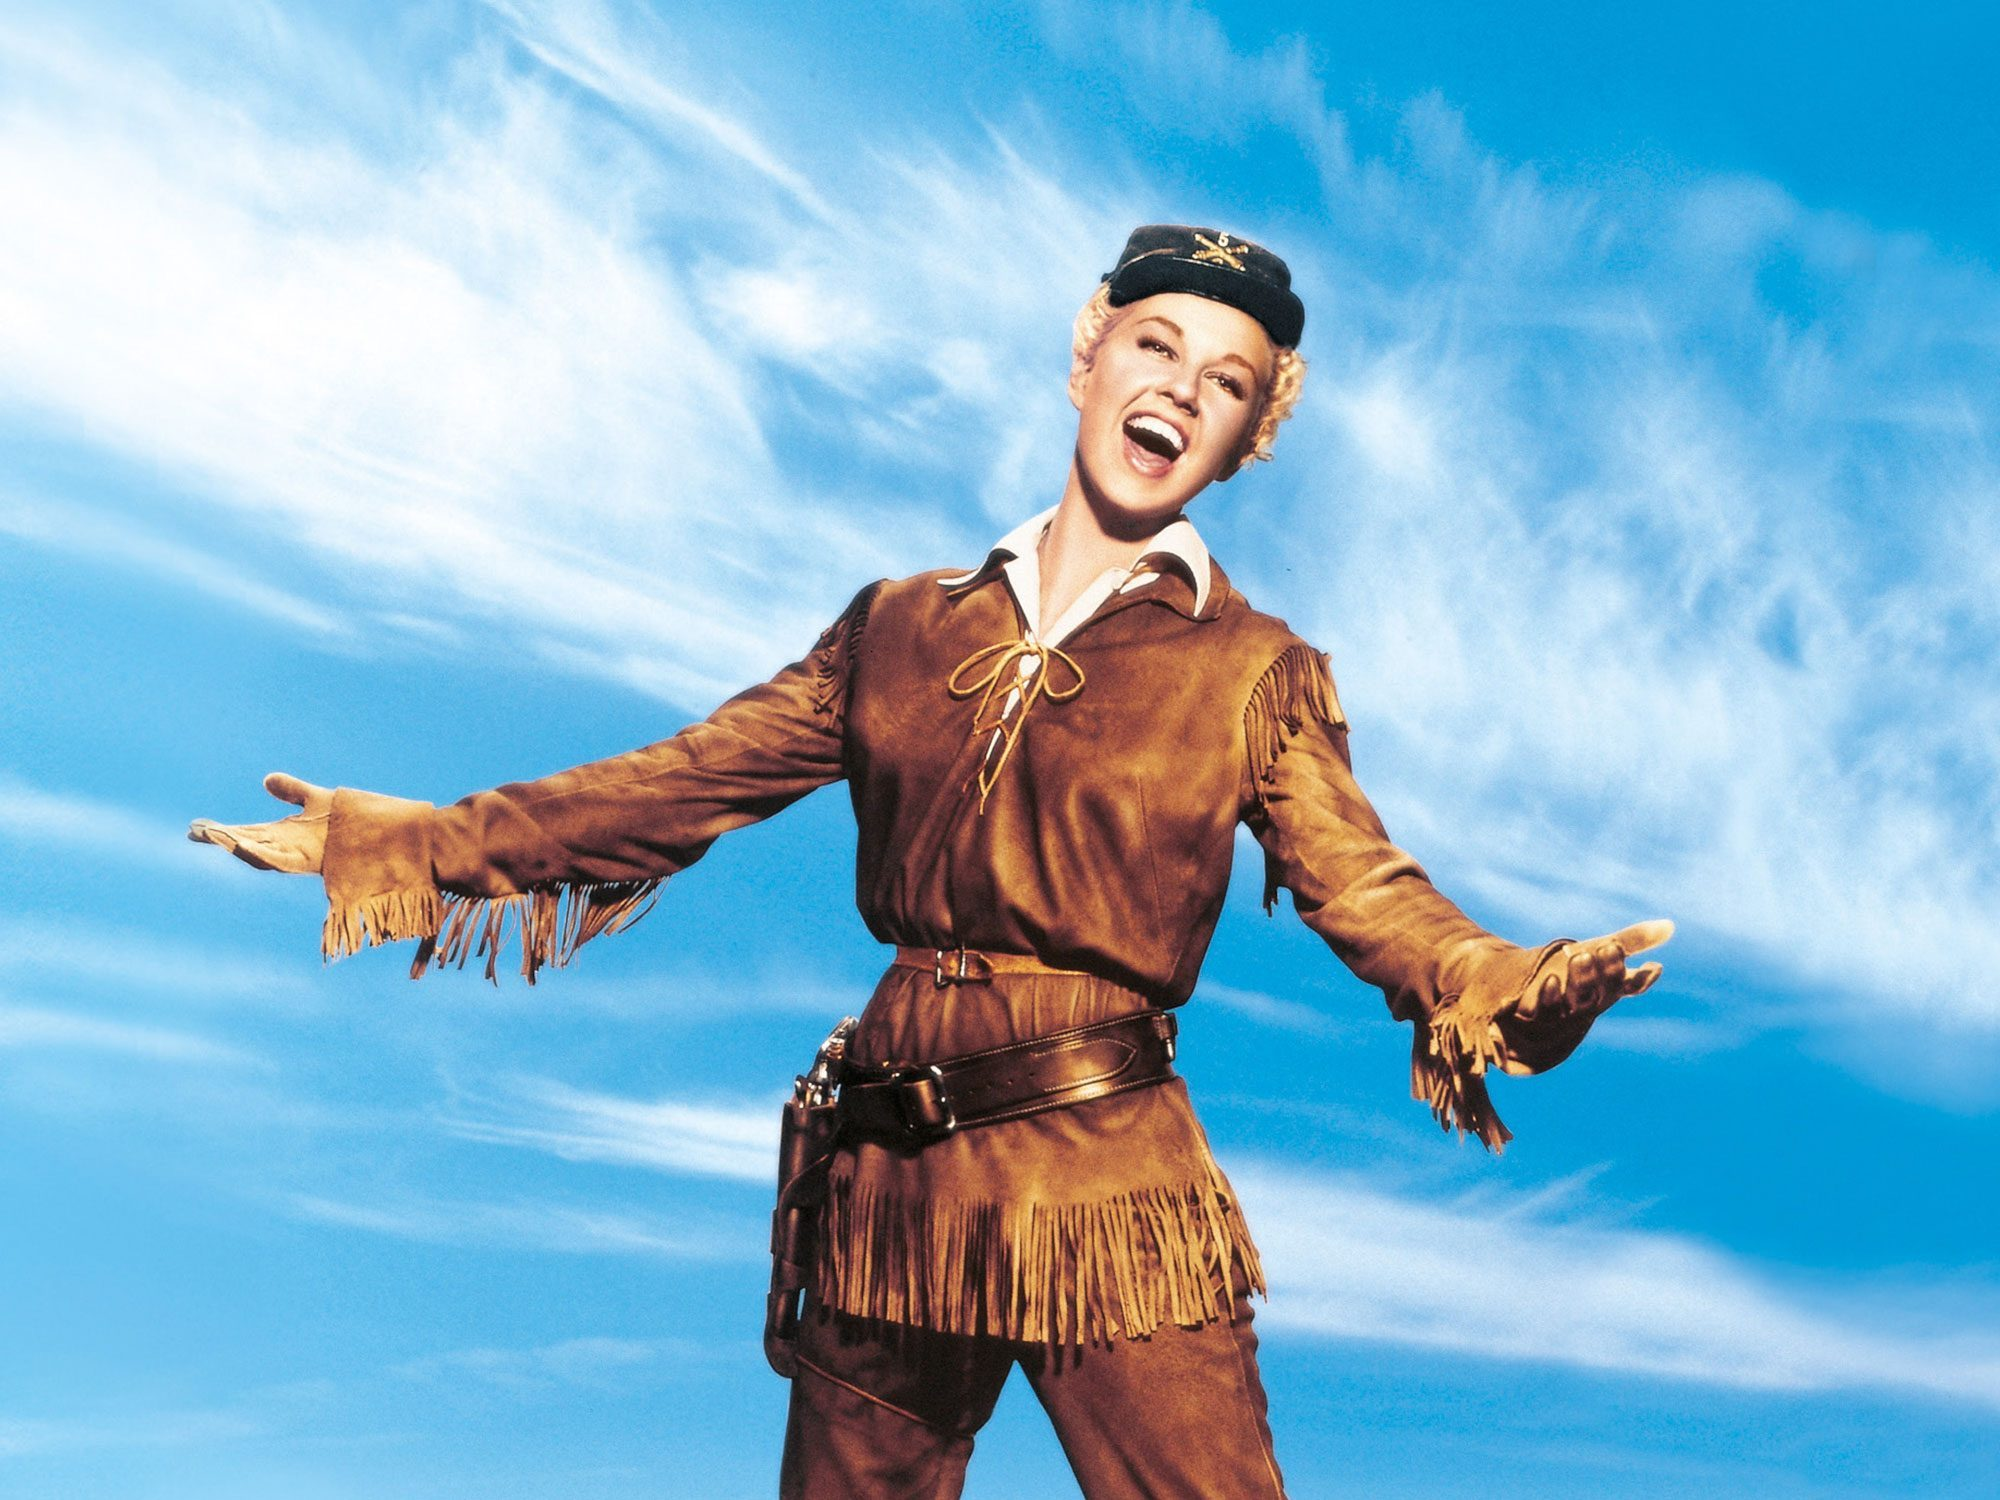 calamity-jane-sing-a-long.jpg